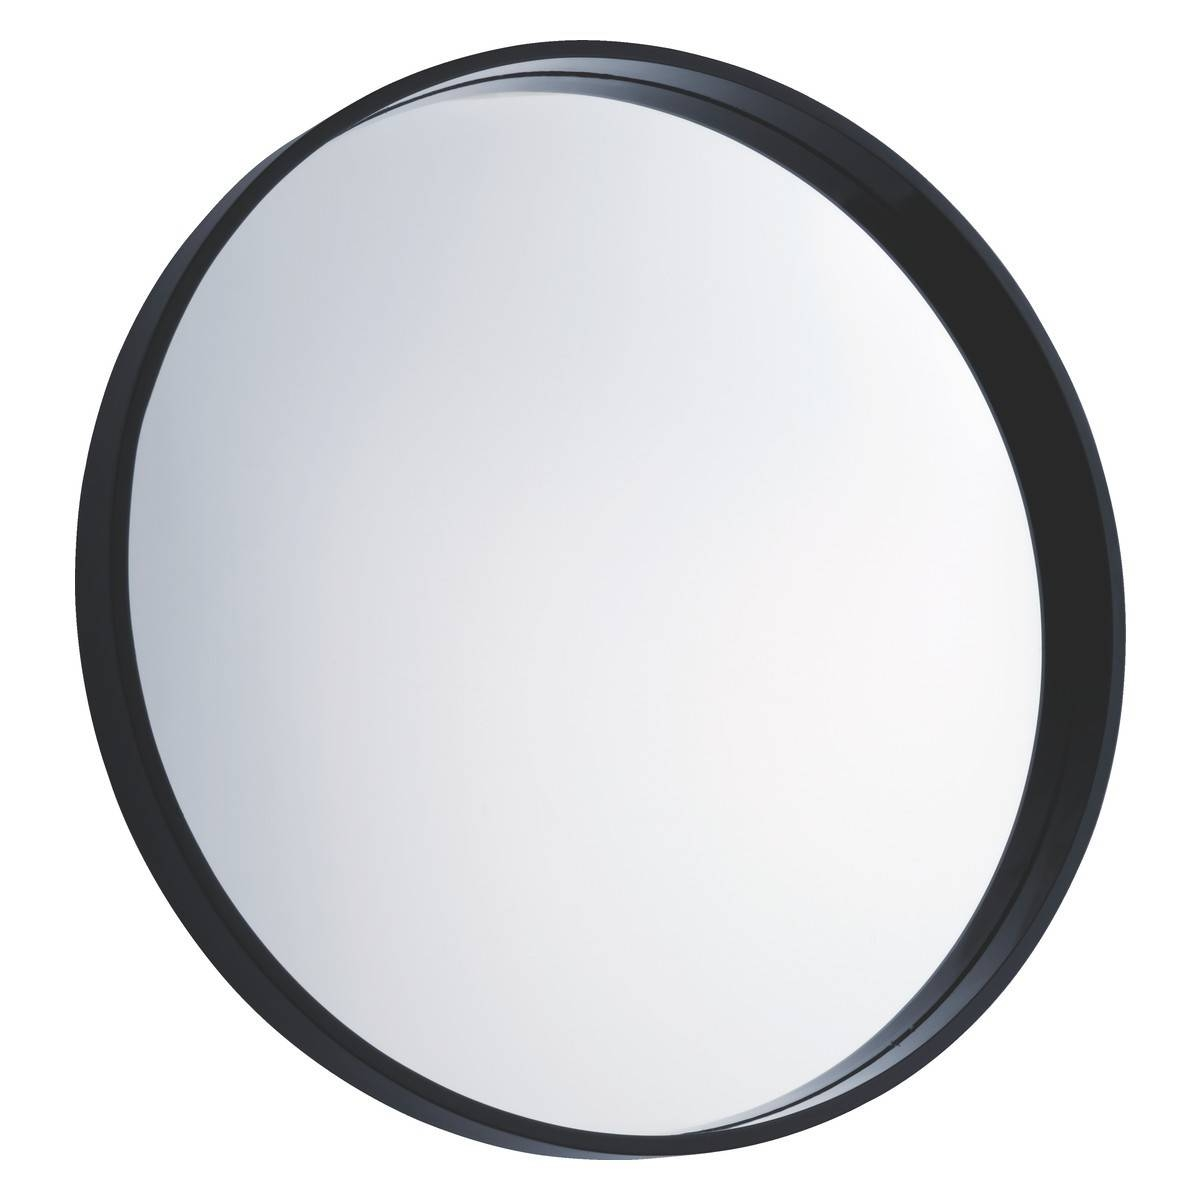 Aimee Black Round Wall Mirror D65Cm | Buy Now At Habitat Uk intended for Round Mirrors (Image 2 of 15)